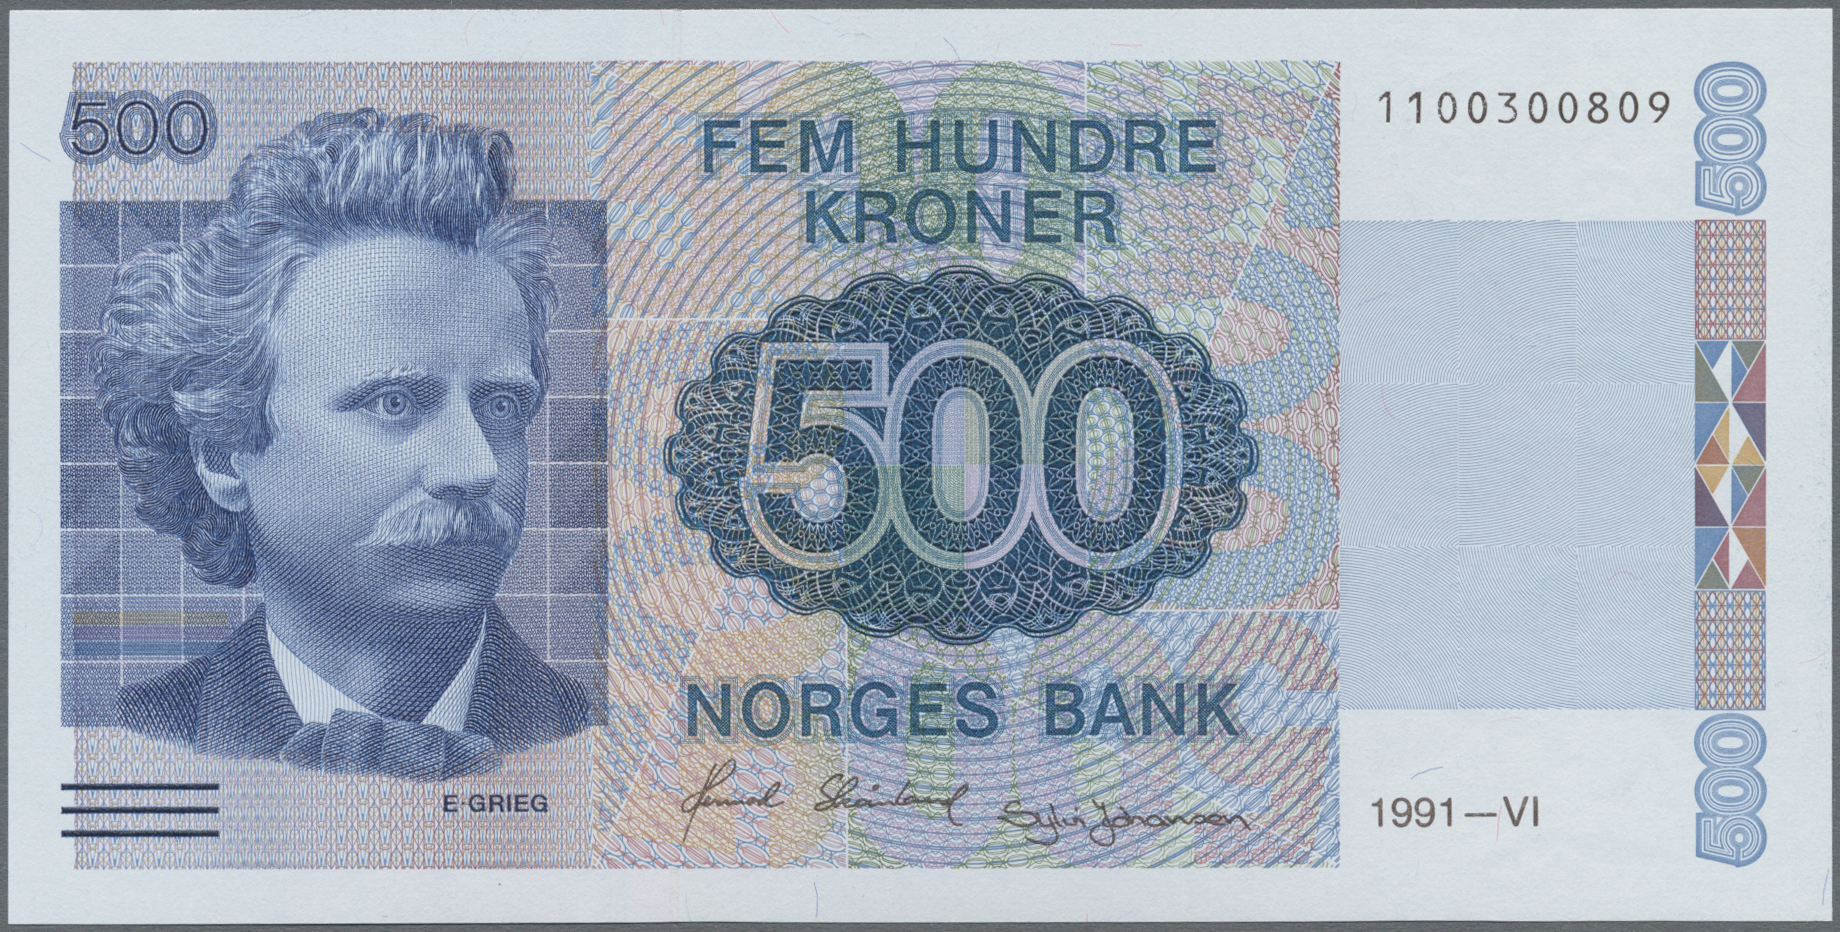 Lot 00579 - Norway / Norwegen | Banknoten  -  Auktionshaus Christoph Gärtner GmbH & Co. KG Sale #48 The Banknotes